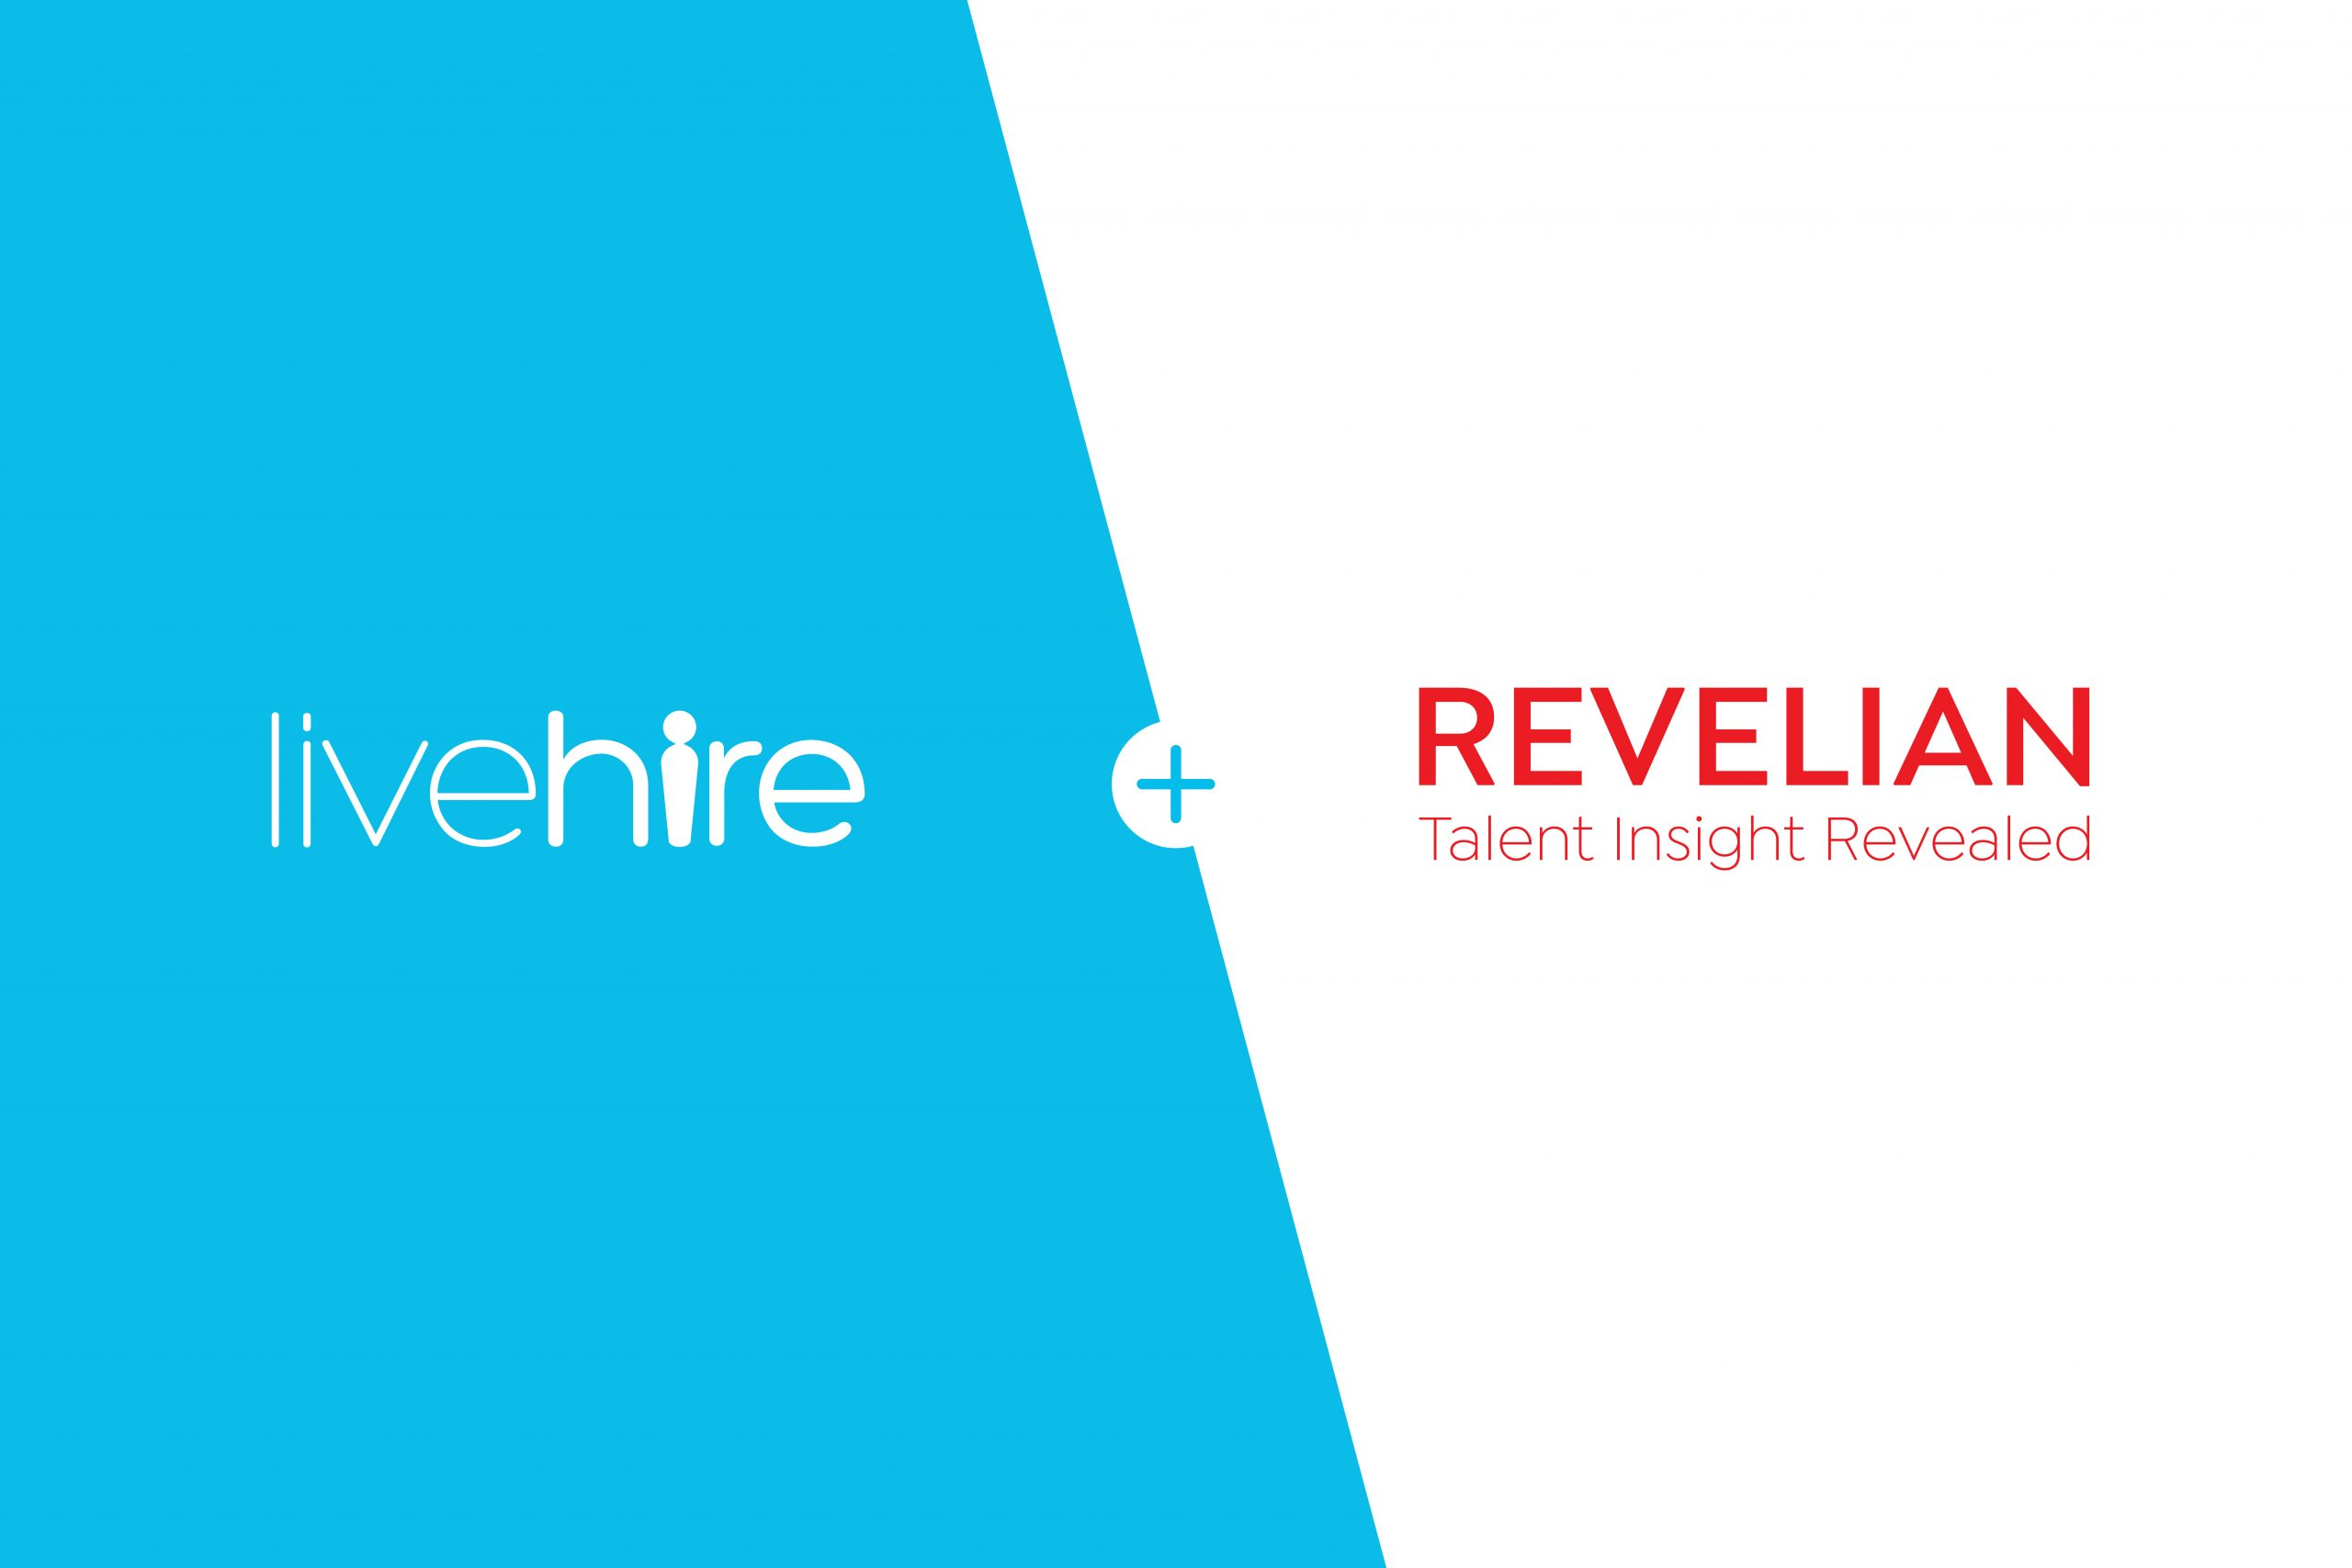 Revelian & LiveHire: Dig beneath the surface